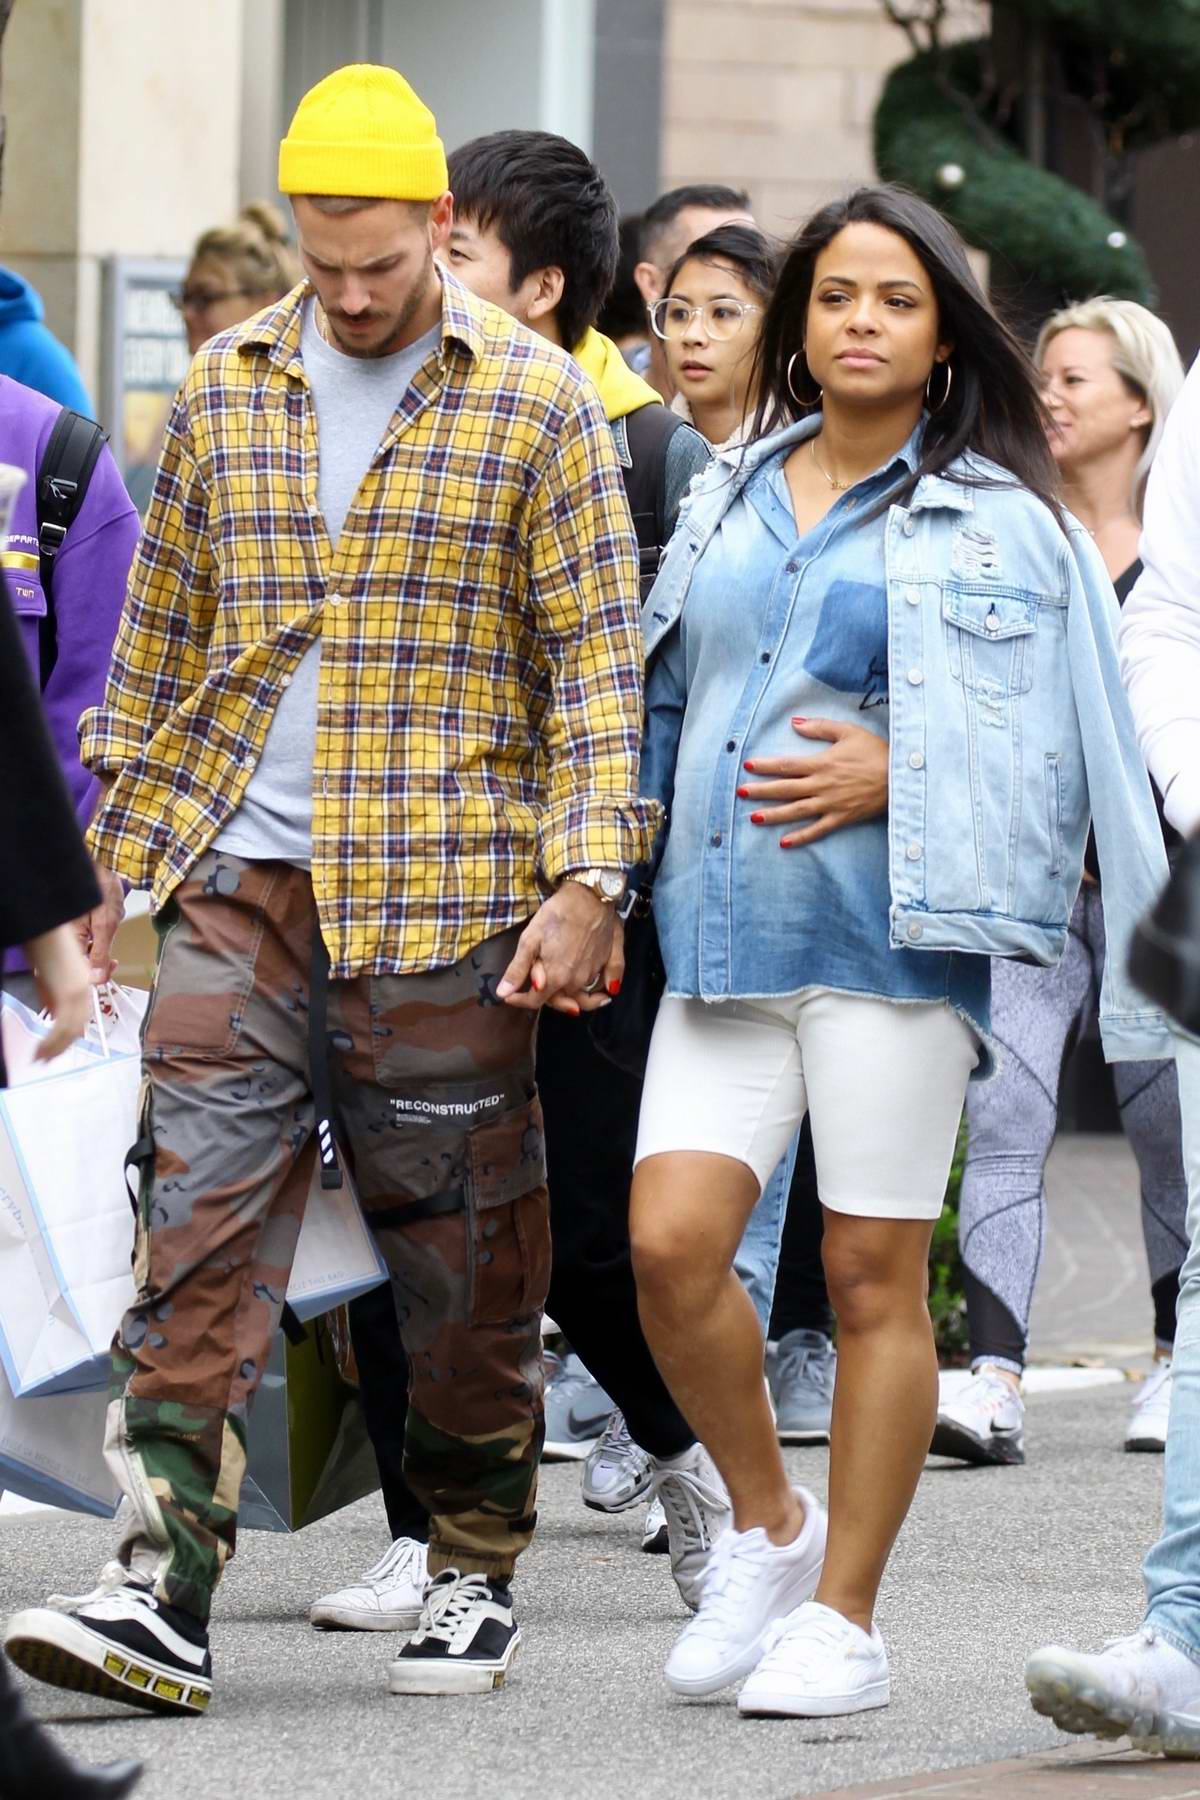 Christina Milian shops at Pottery Barn kids with boyfriend Matt Pokora in West Hollywood, California